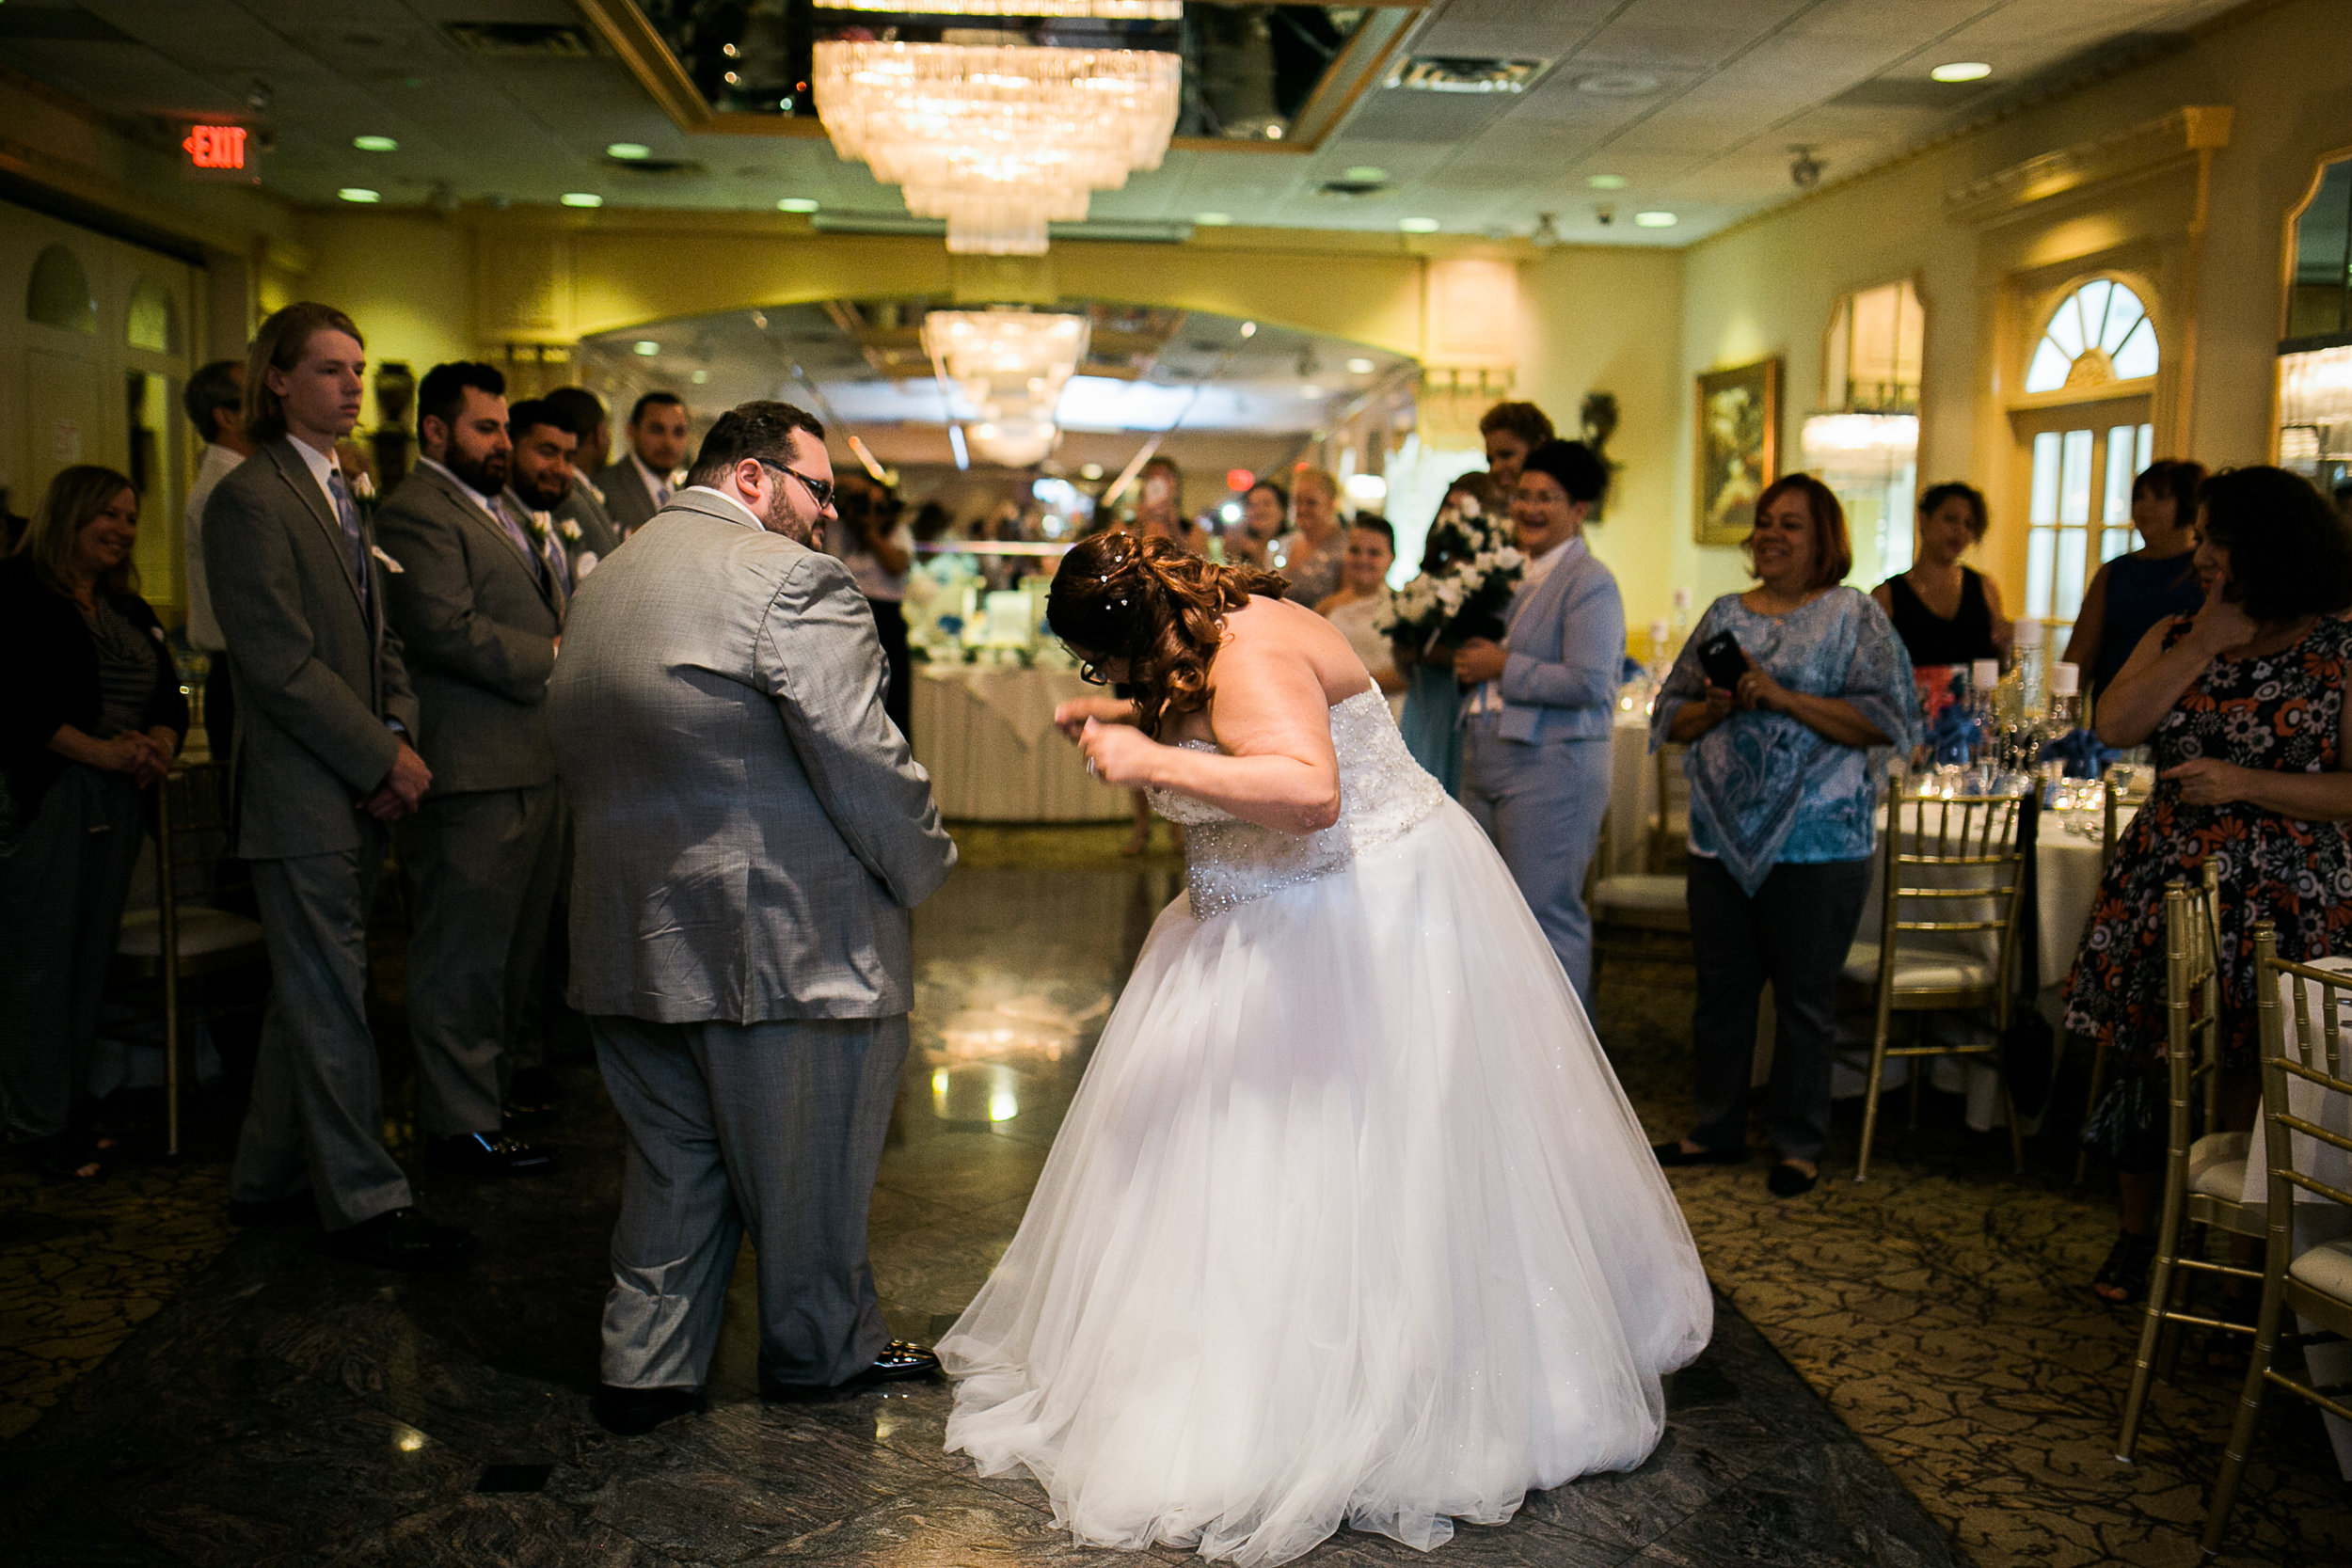 Disney Wedding New Jersey Sweet Alice Photography-1-75.jpg